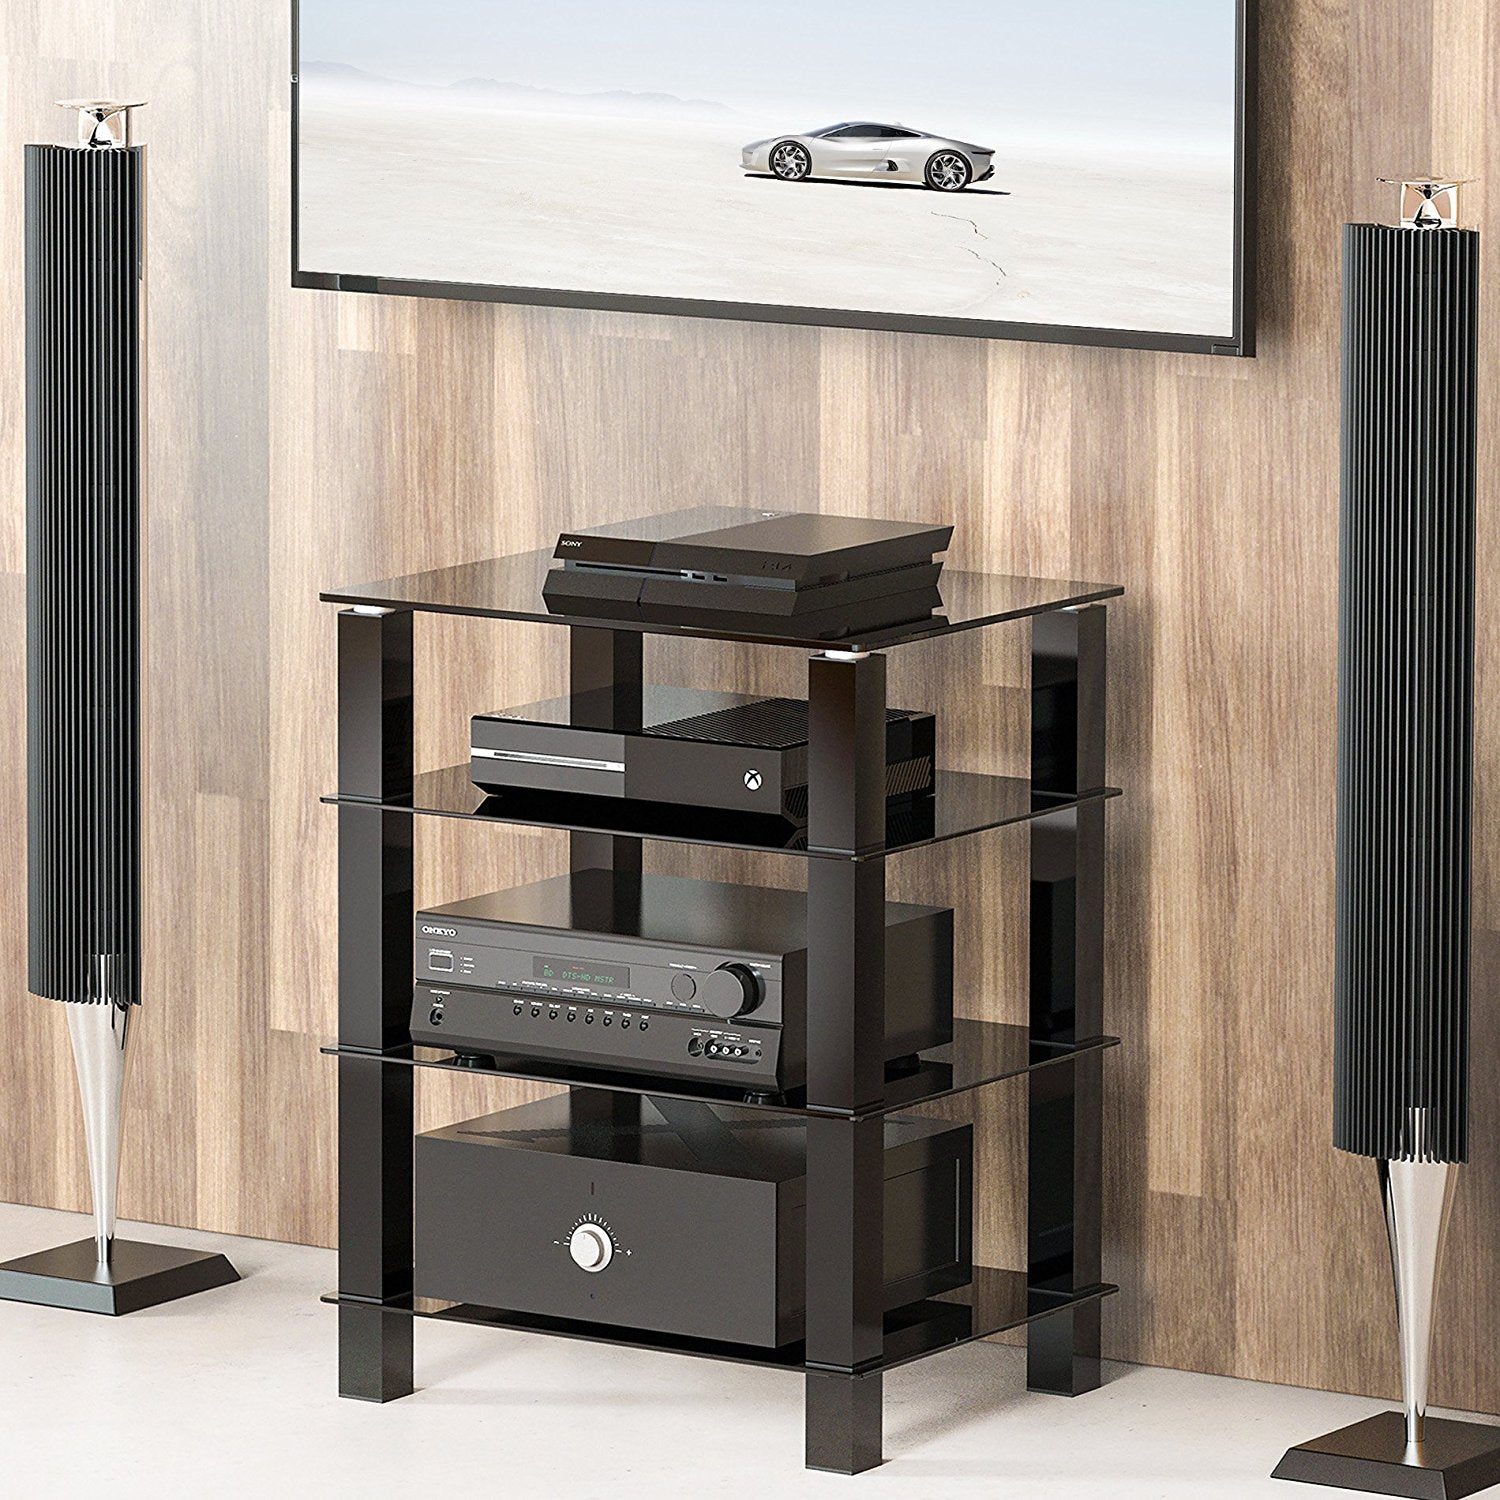 lets stands cabinet home audiokarma img systems identifying equipment design component theater this your see racks inspiration photos help diy av stereo video ikea console audio media mount decor zenith and gcsis rack homes unique